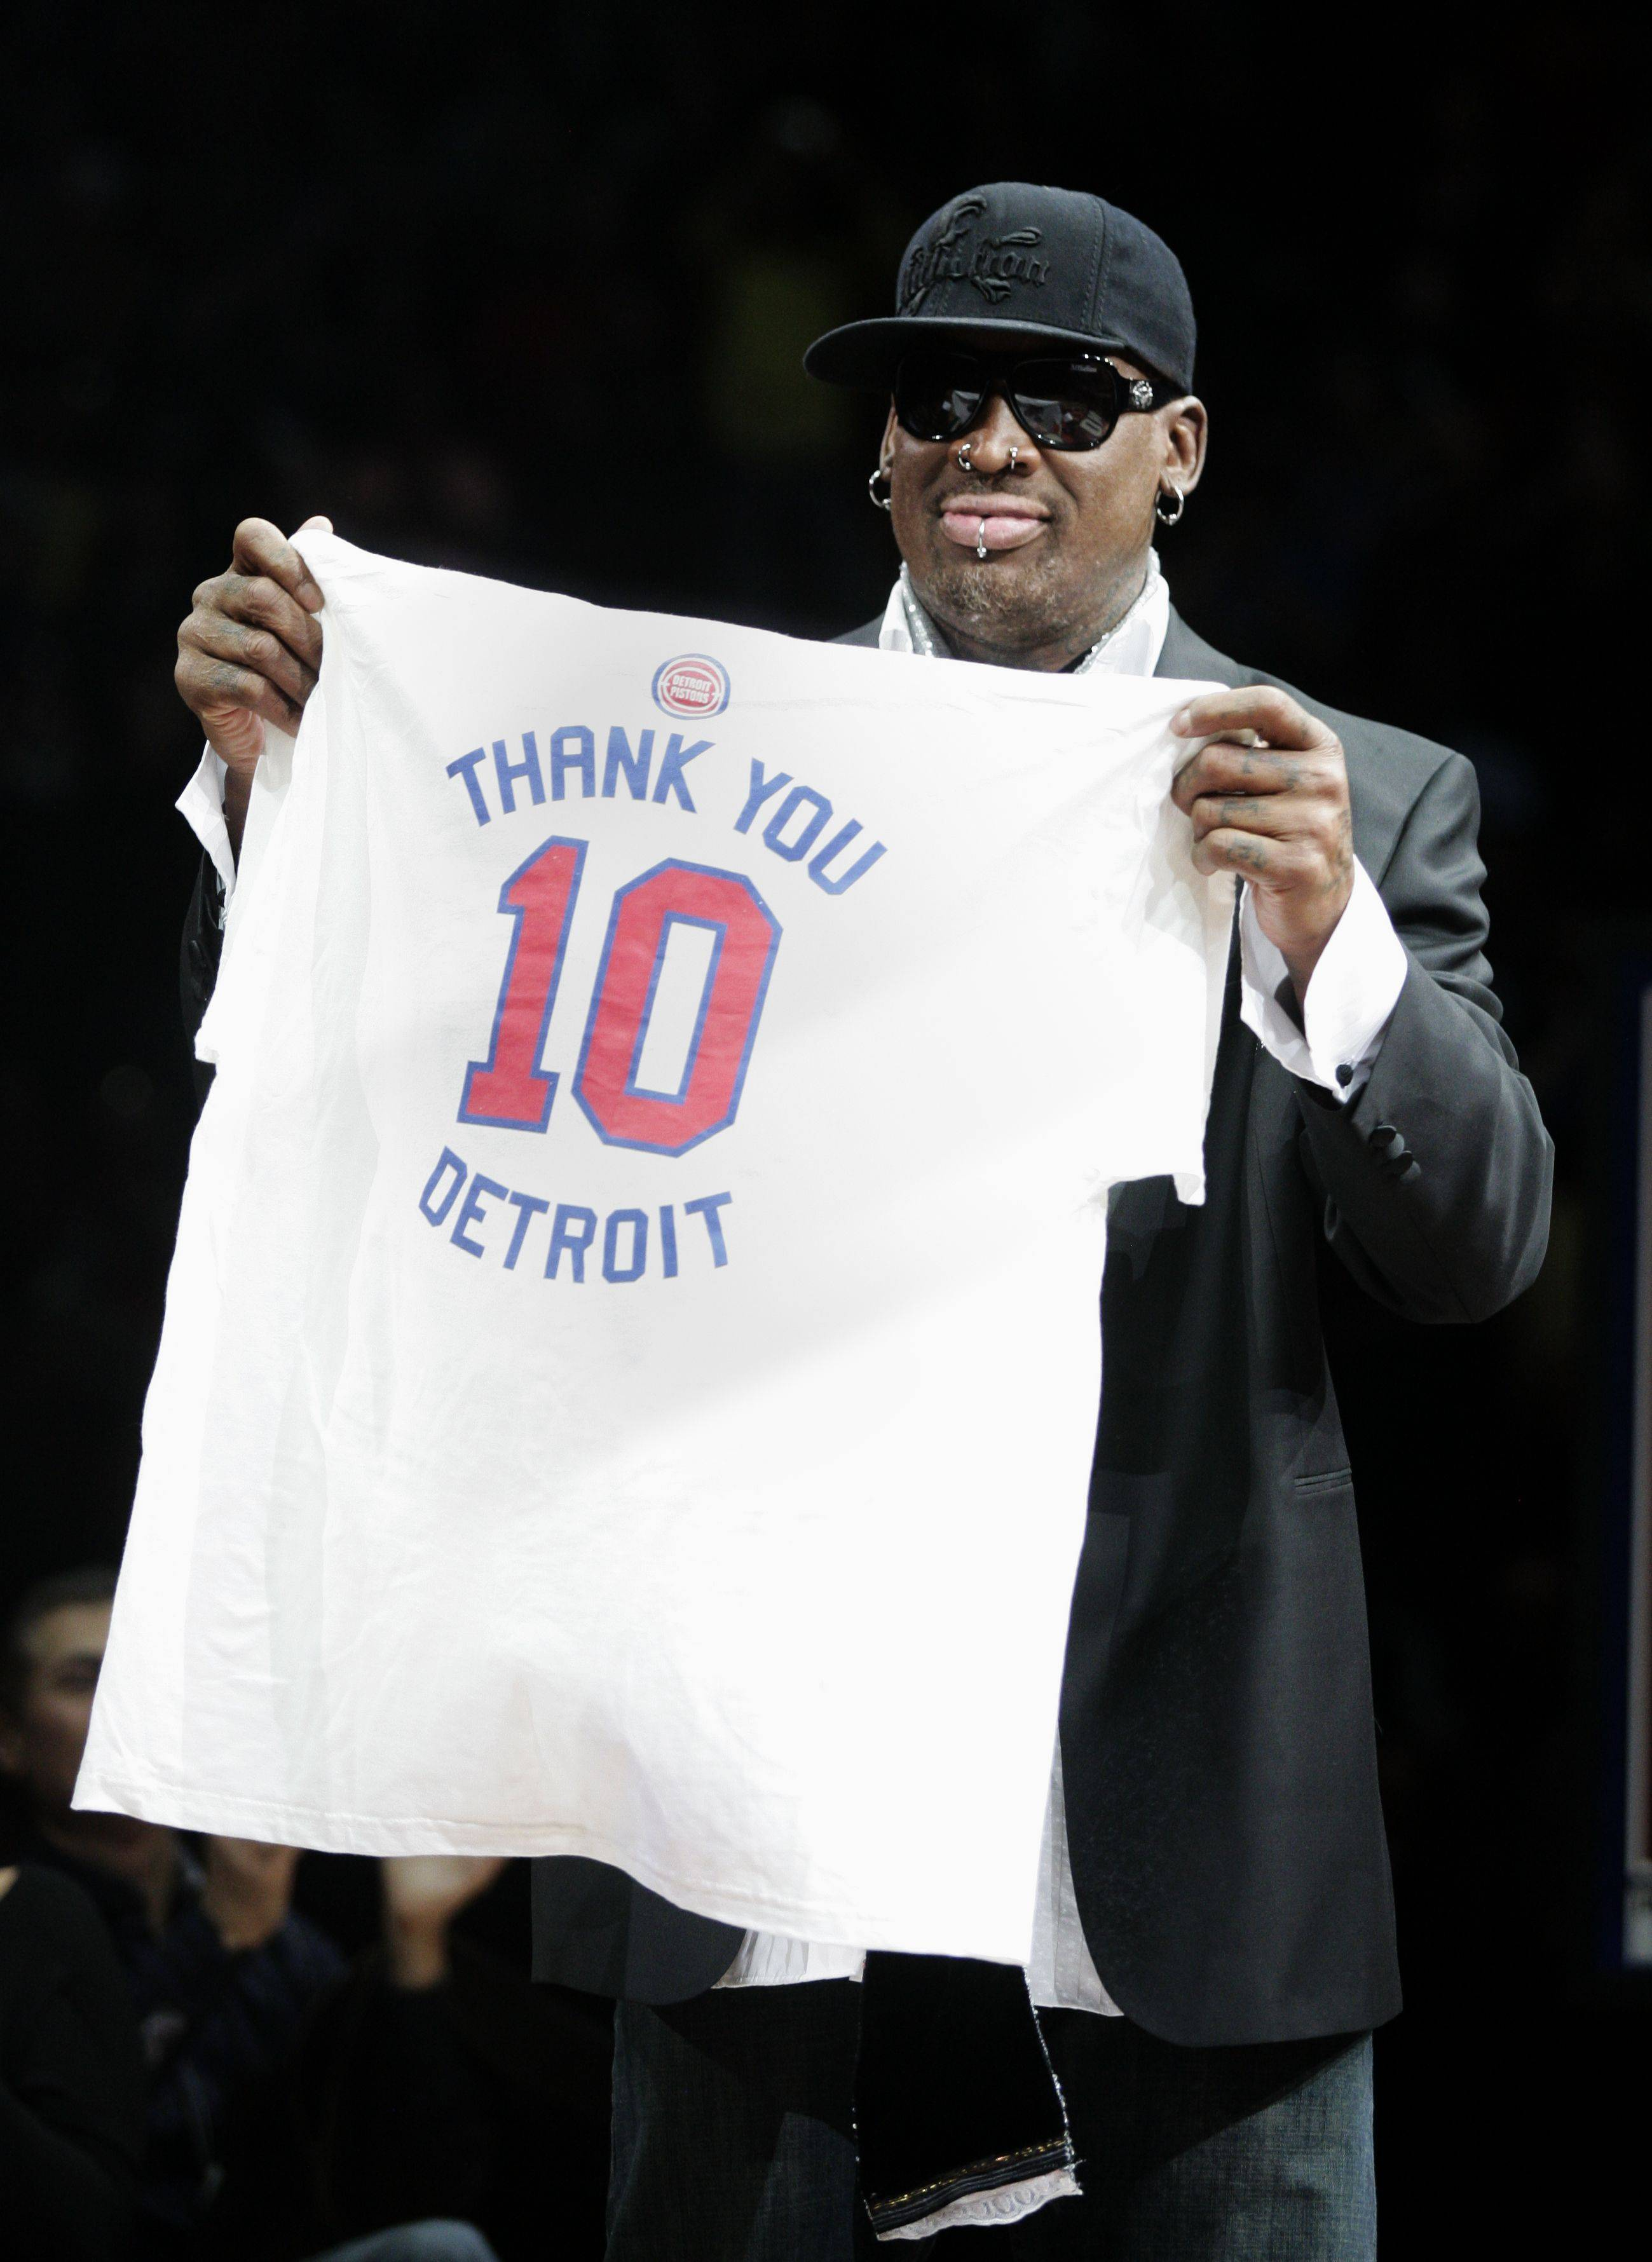 Former Detroit Piston Dennis Rodman holds up a t-short with his number 10 to thank the fans during a ceremony to retire his jersey at an NBA basketball game against the Chicago Bulls Friday, April 1, 2011, in Auburn Hills, Mich.